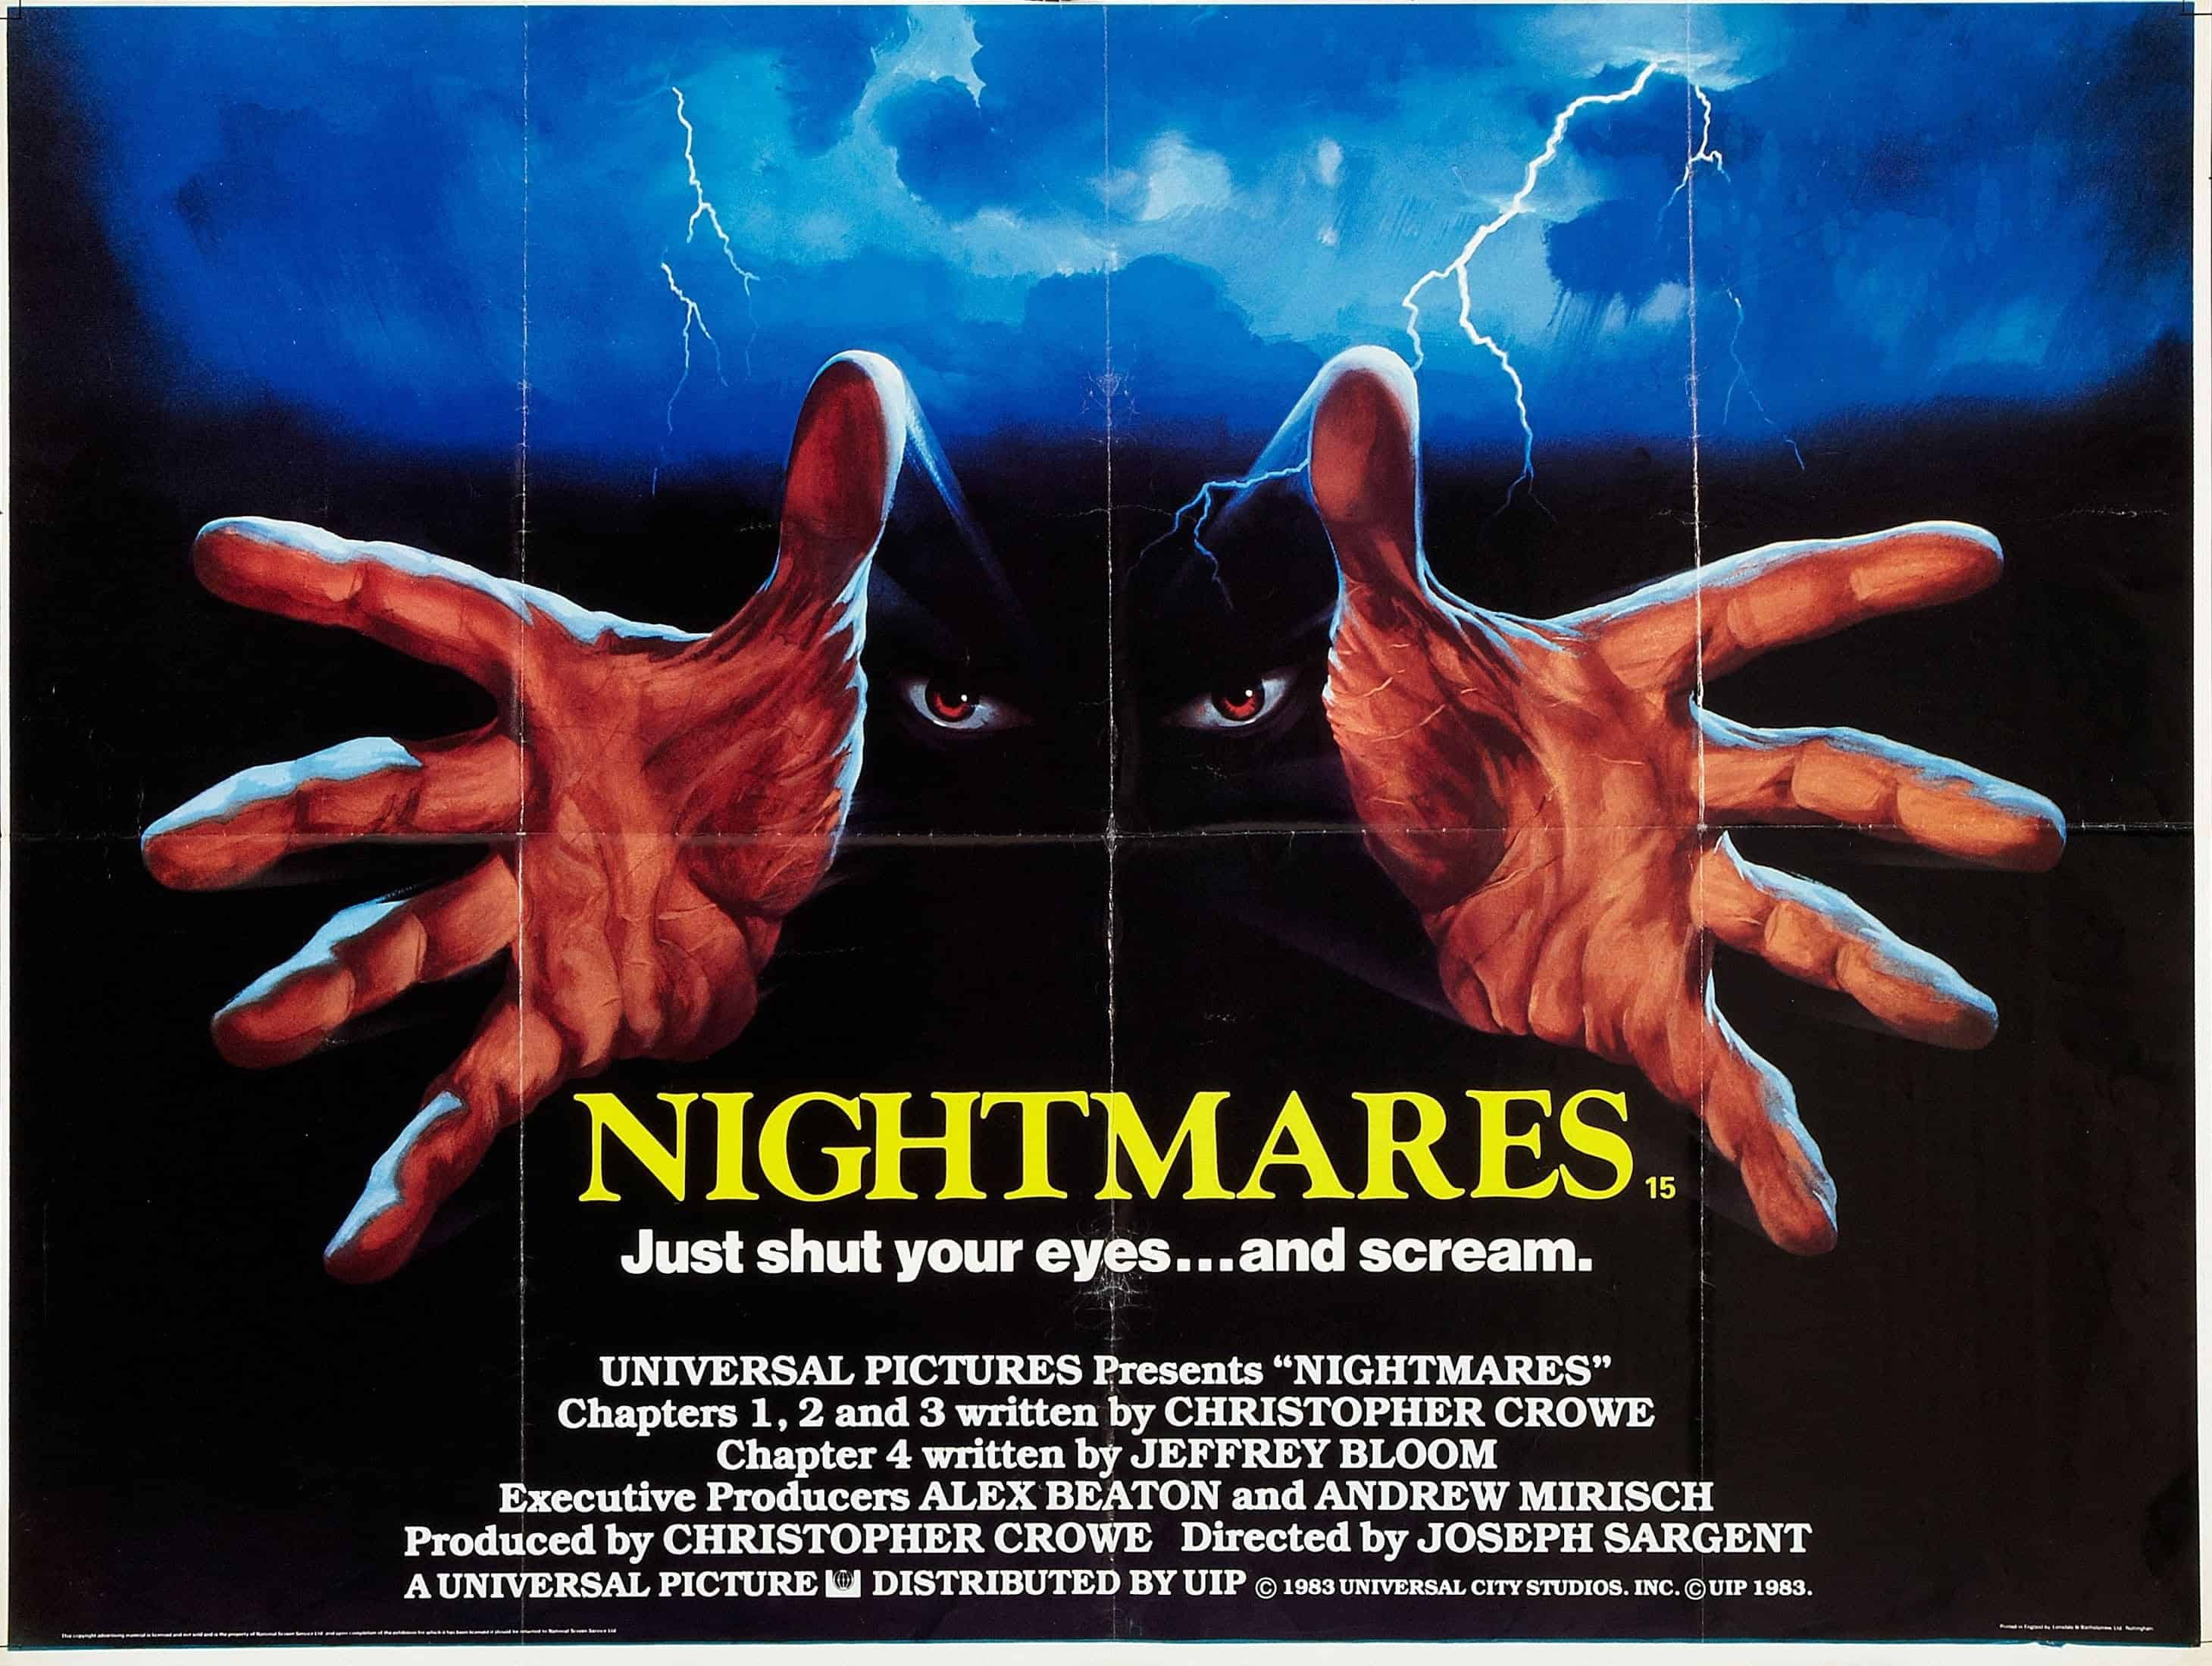 Movie Posters We Love: Nightmares (1983)